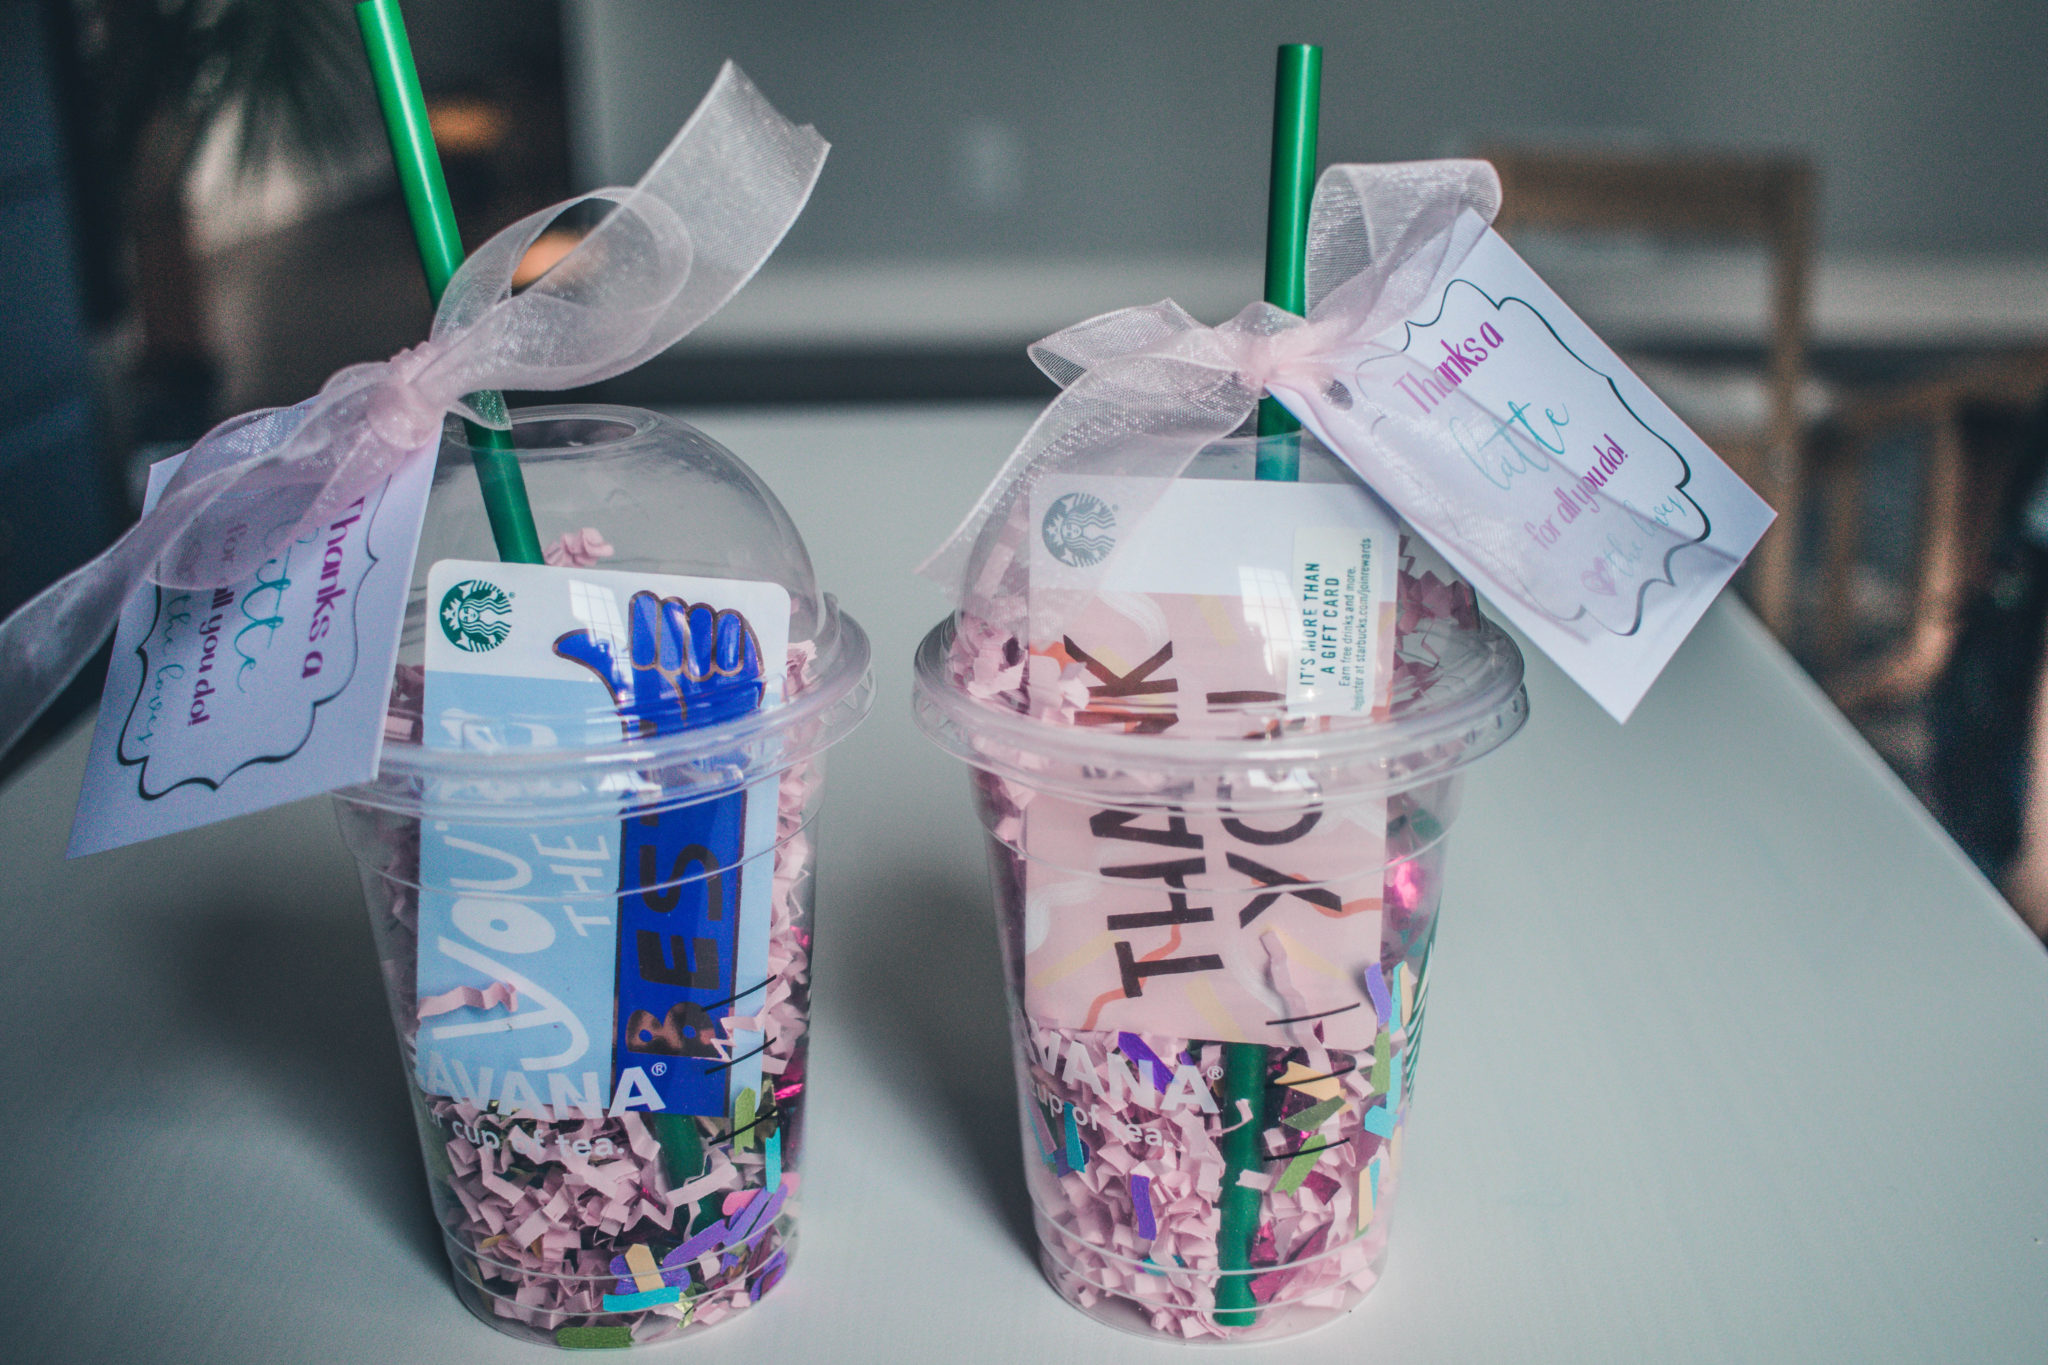 photograph about Starbucks Printable Gift Card named Starbucks Present Strategy with Cost-free Printable Tag The Take pleasure in Notes